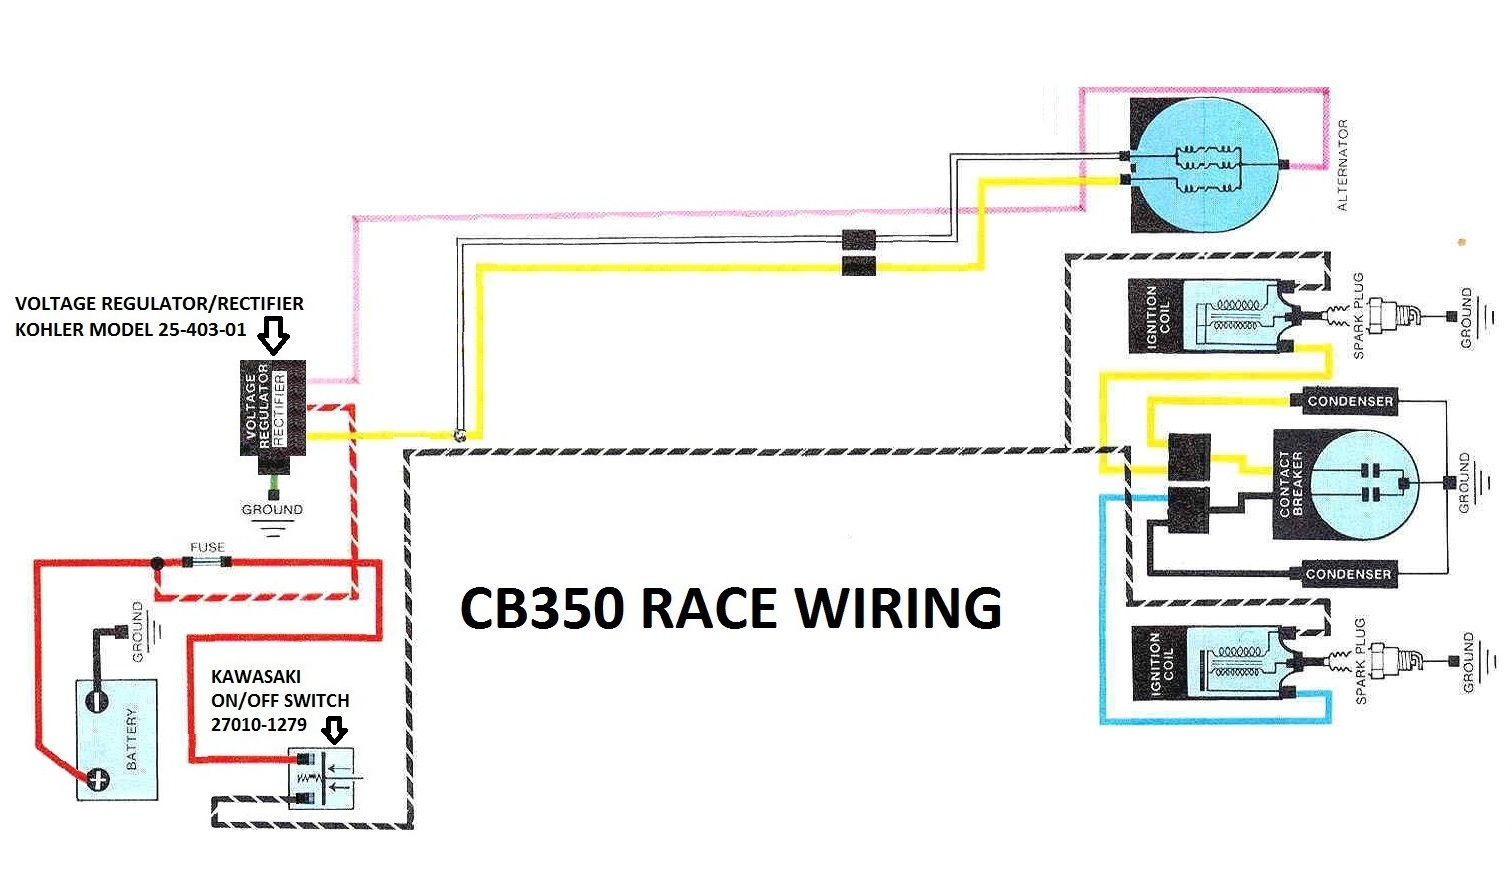 cb 350 wiring diagram detailed schematics diagram rh keyplusrubber com  Light Switch Wiring Diagram 1973 honda